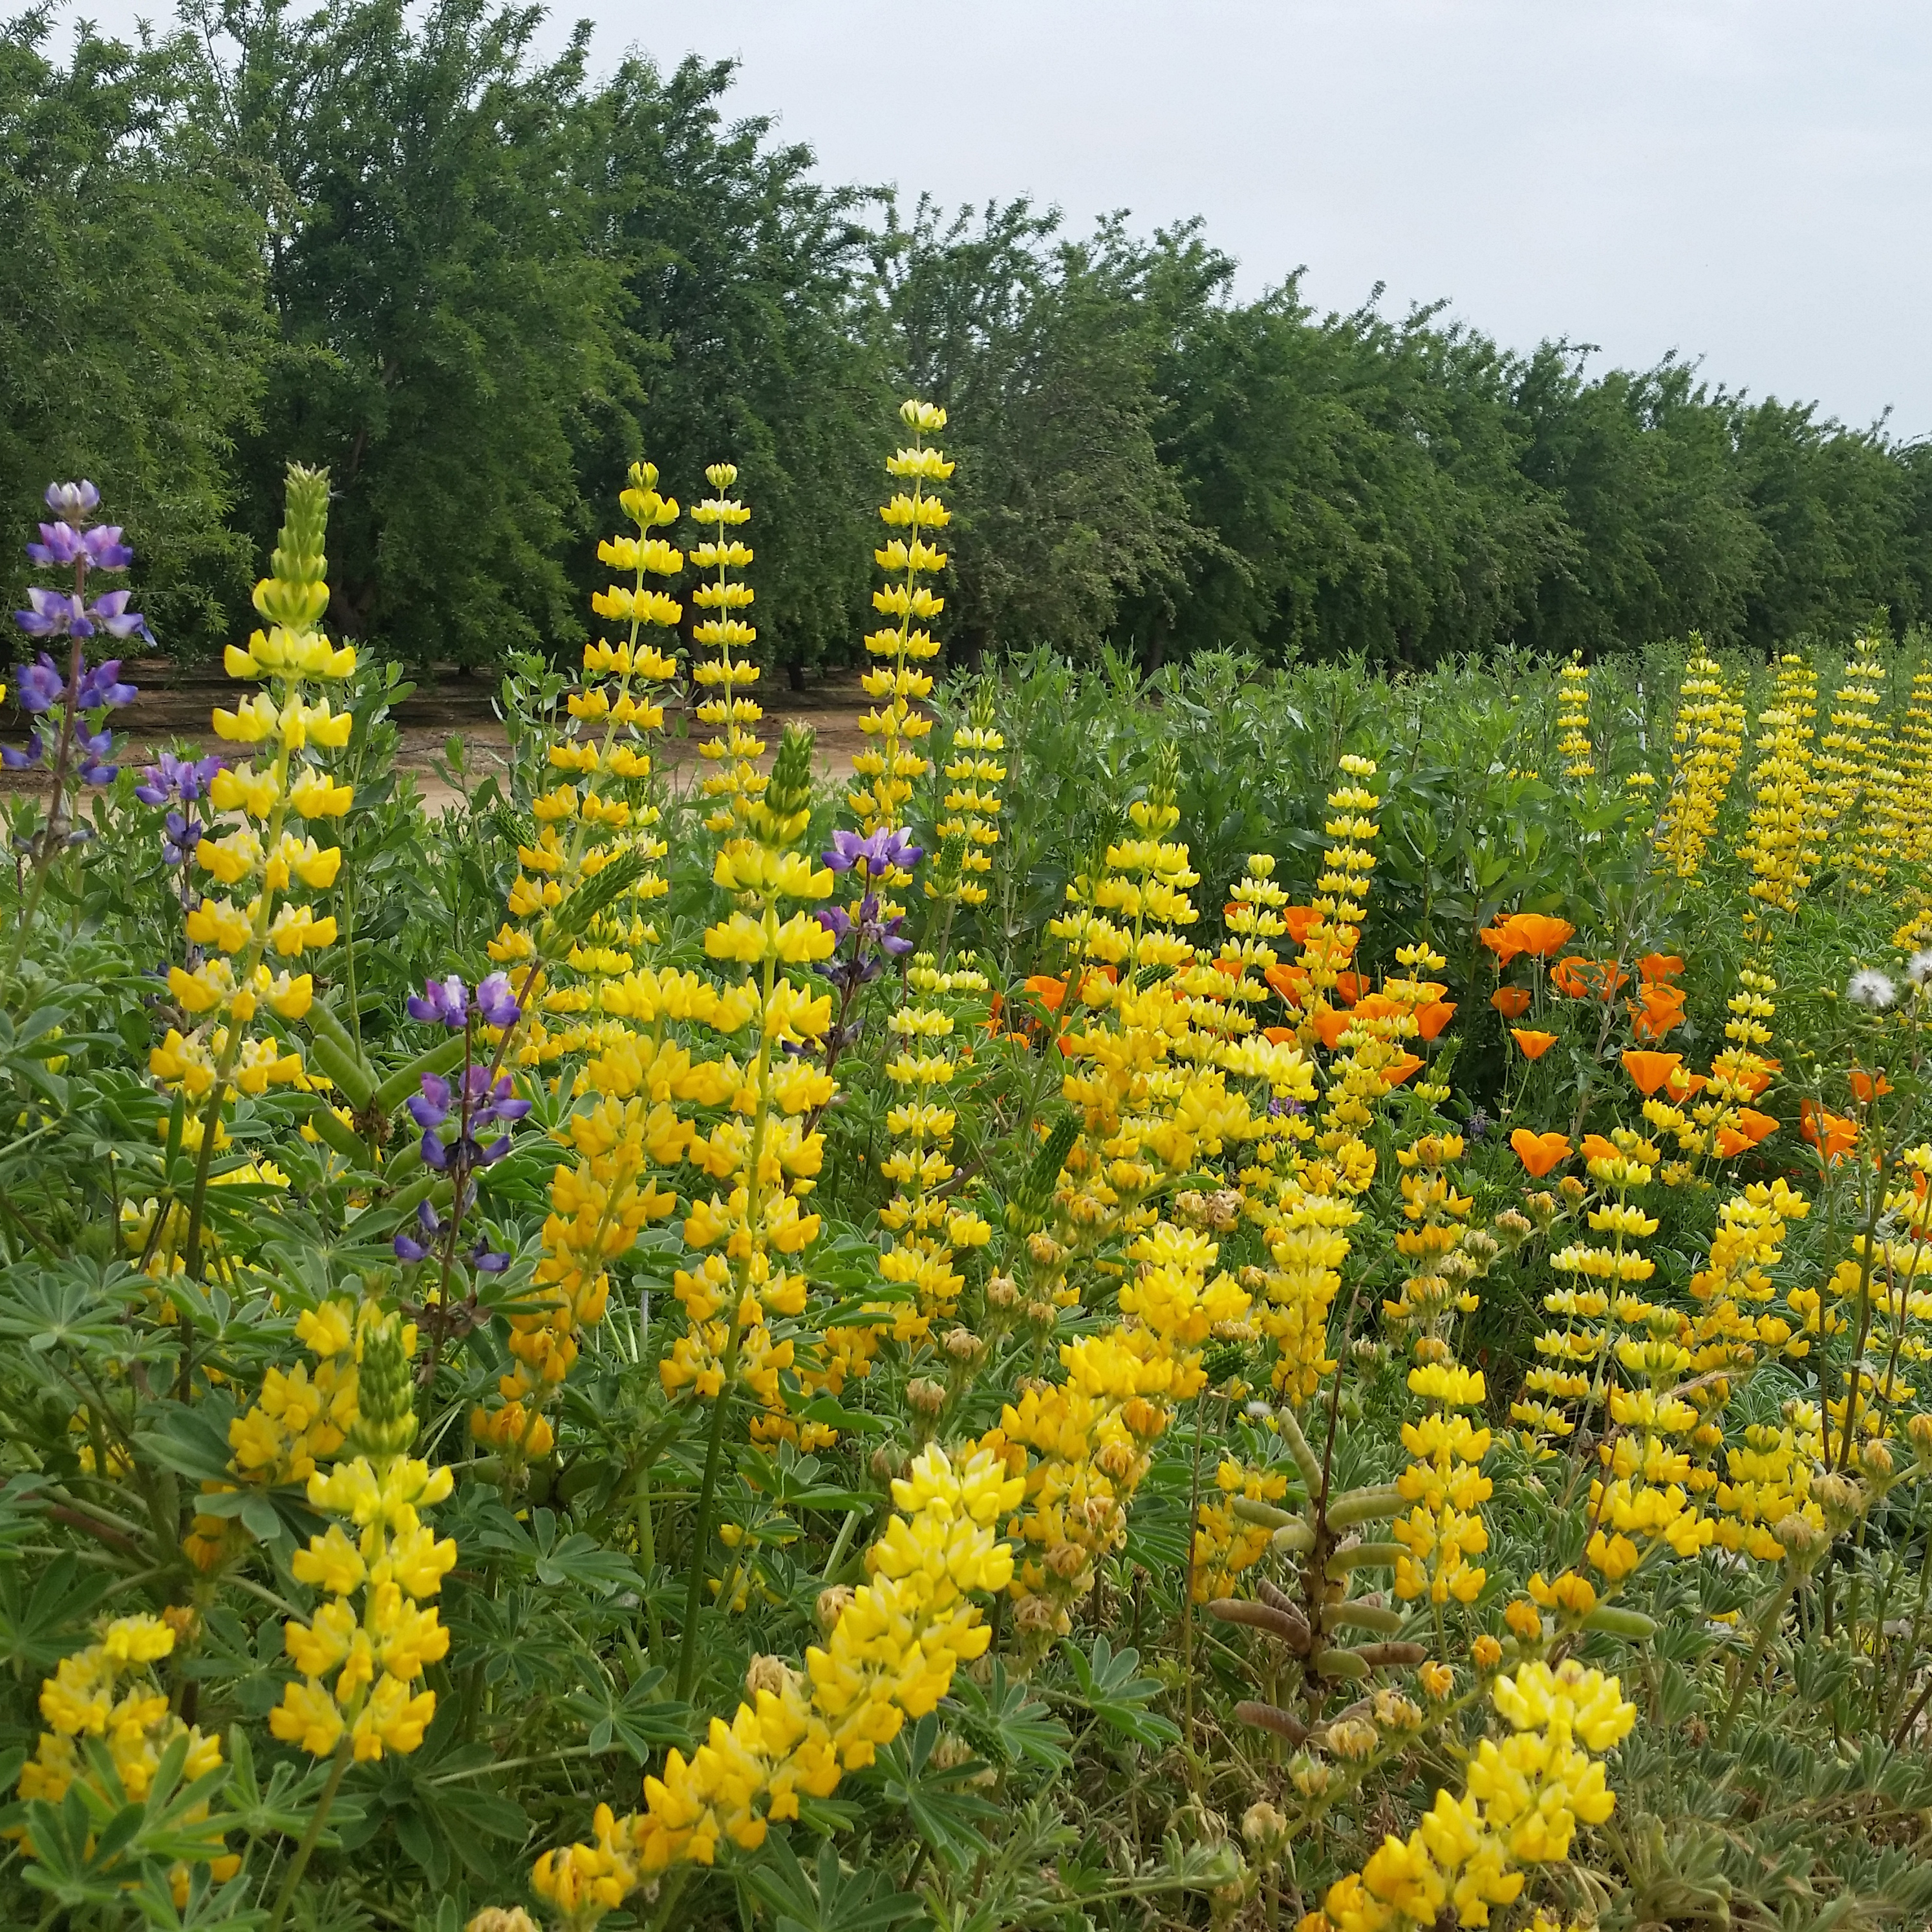 Brightly-colored blooms in a hedgerow dominate the foreground; behind is a row of almond trees.